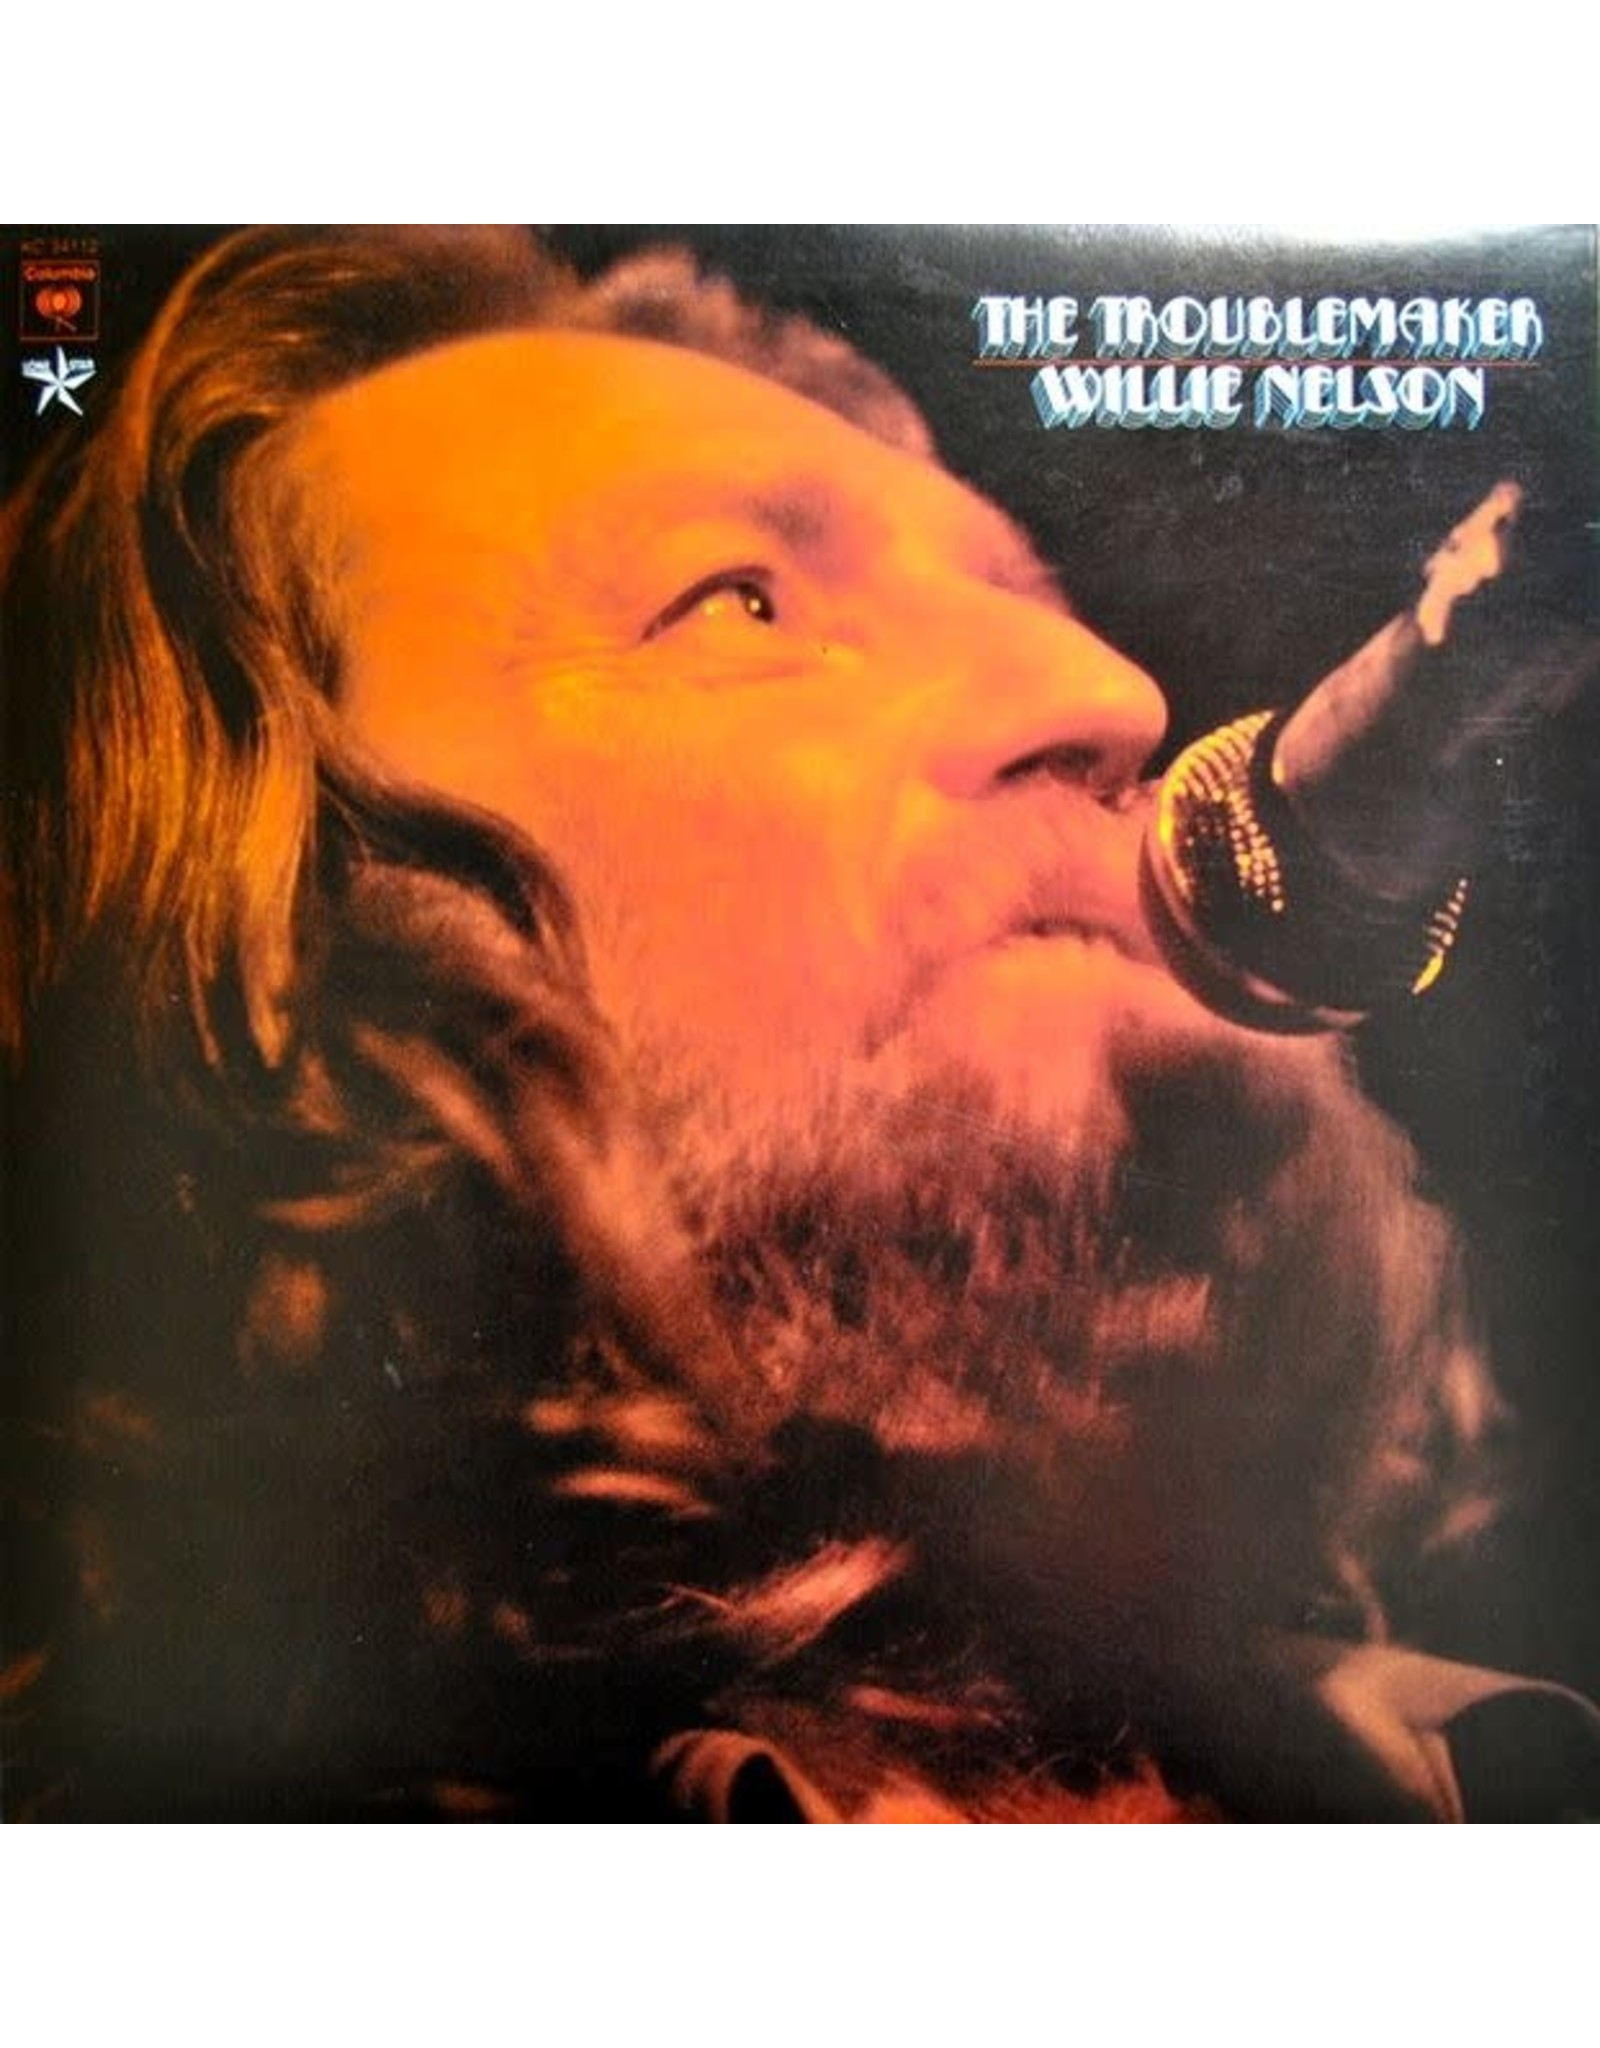 Nelson, Willie - The Troublemaker LP